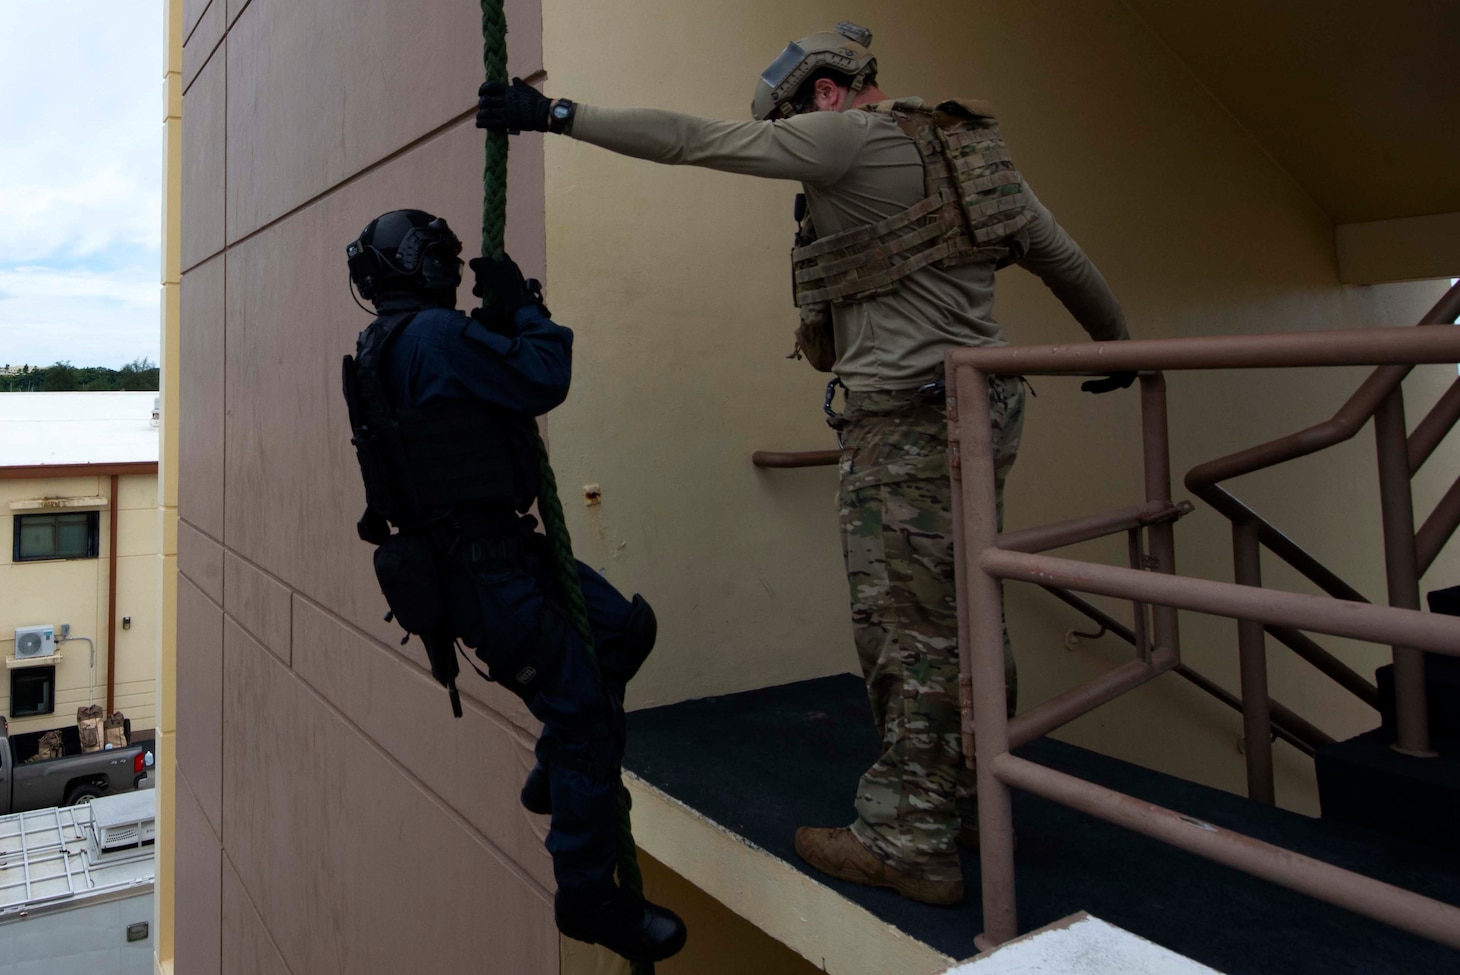 A U.S. Naval Special Warfare operator holds a rope for a Japan Maritime Self-Defense Force sailor as part of MALABAR 2021. MALABAR 2021 is an example of the enduring partnership between Australian, Indian, Japanese and American maritime forces, who routinely operate together in the Indo-Pacific, fostering a cooperative approach toward regional security and stability. Naval Special Warfare is the nation's premiere maritime special operations force and is uniquely positioned to extend the Fleet's reach and deliver all-domain options for naval and joint force commanders.